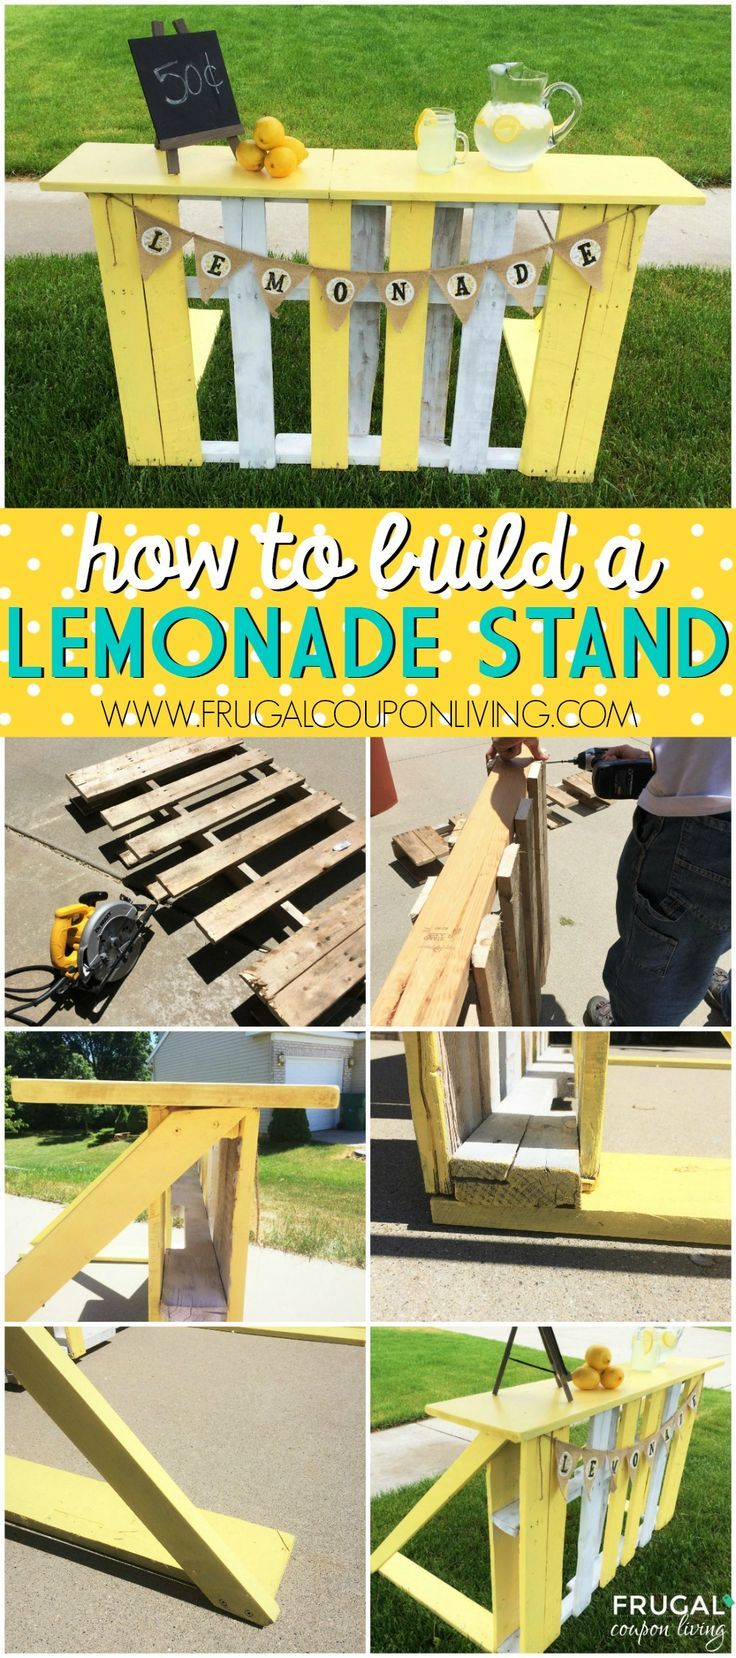 How to Build a Lemonade Stand with a Recycled Pallet on Frugal Coupon Living. Le...